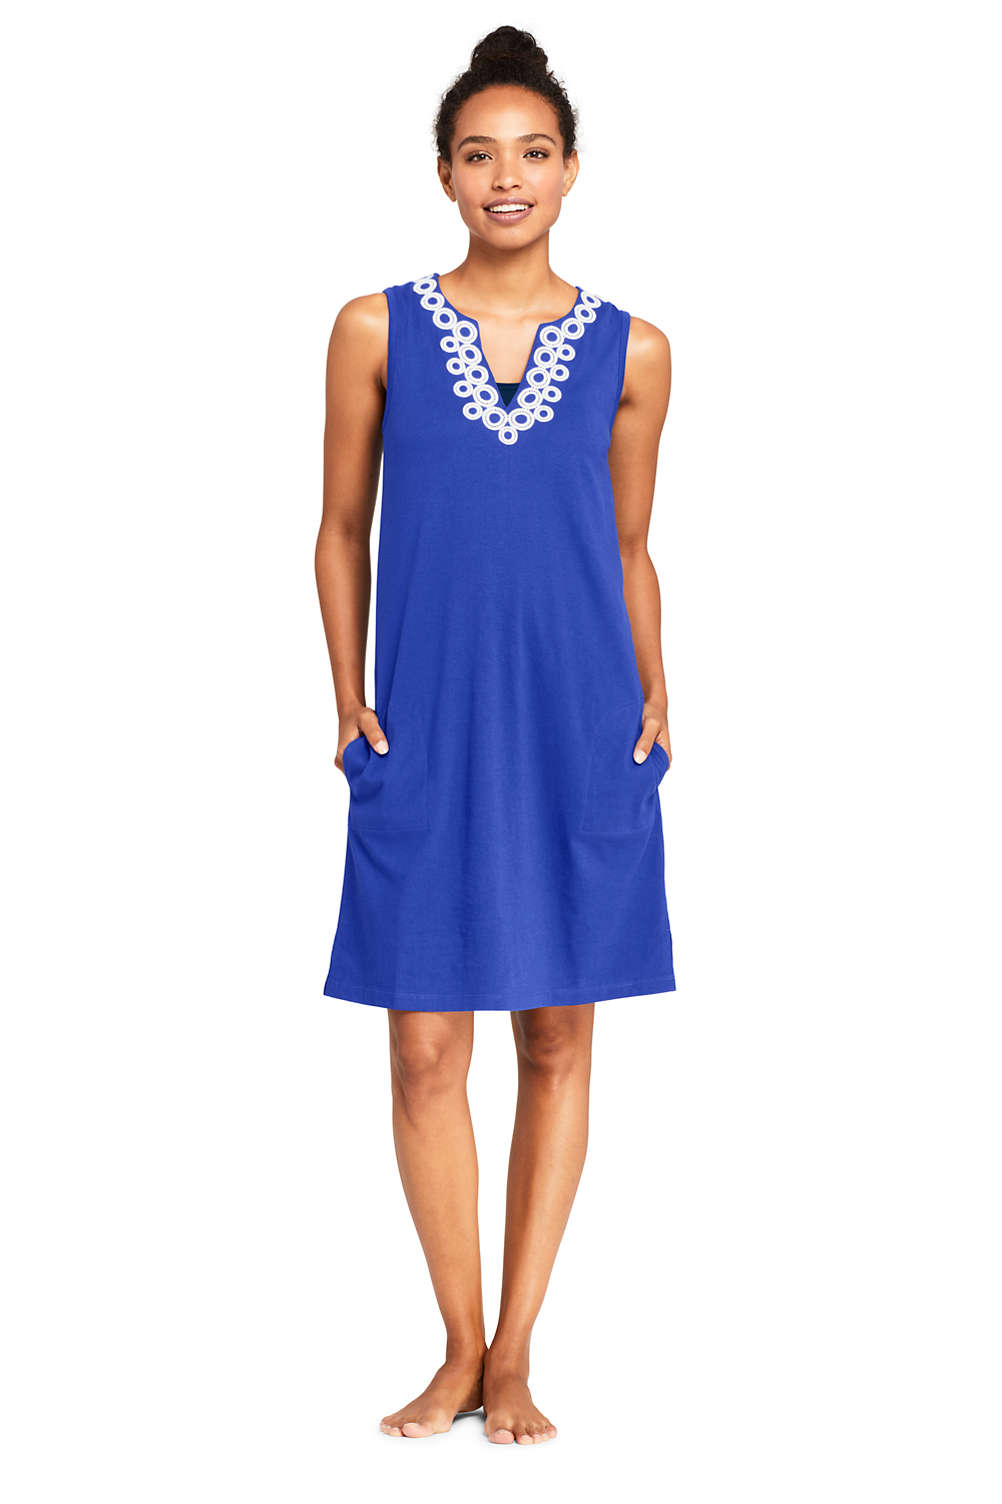 eb92f20db91 Women's Cotton Jersey Embelished Sleeveless Tunic Dress Swim Cover-up from  Lands' End